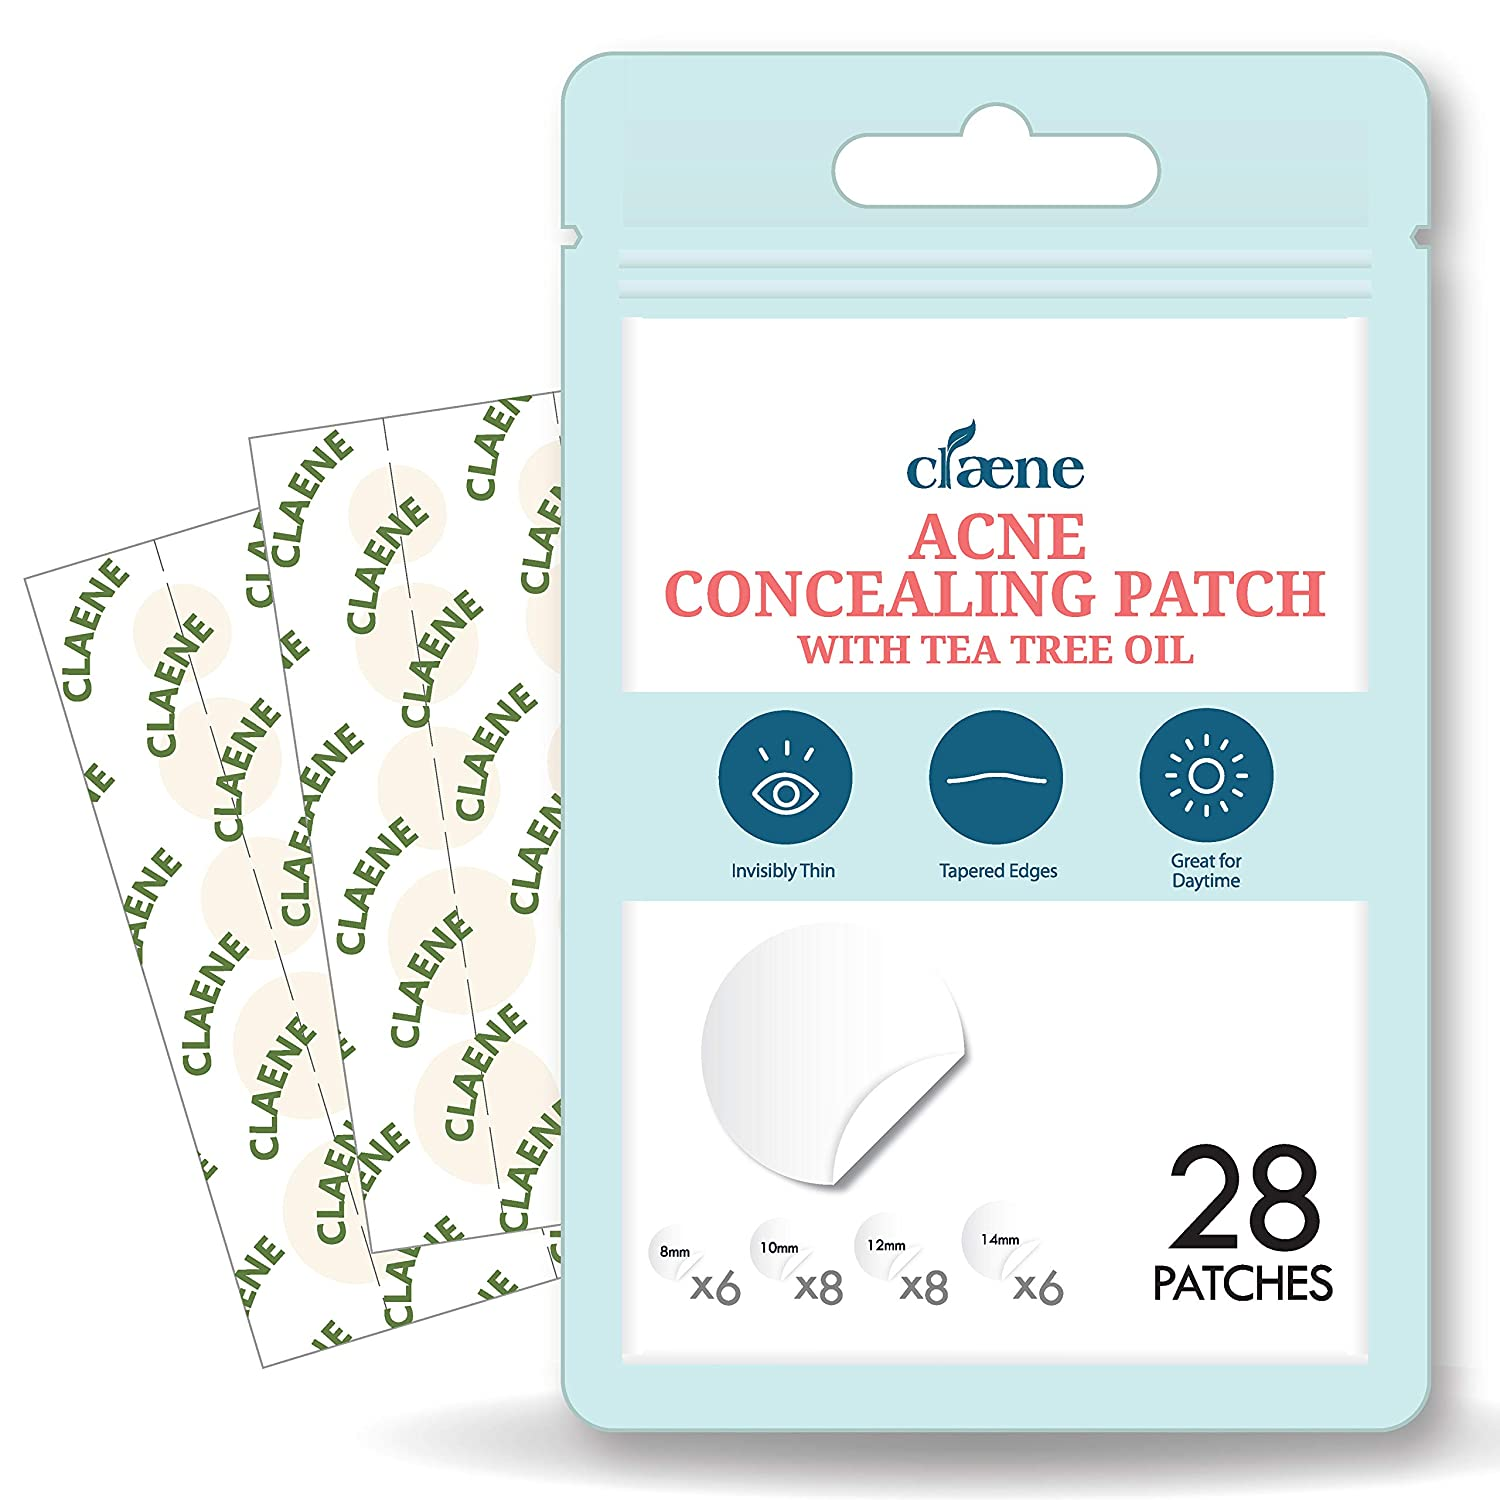 Claene Acne Pimple Concealing Patch - Invisible, Blemish Spot, Hydrocolloid, Skin Treatment, Facial Stickers, Absorbing Cover, 4 Sizes, Blends in with skin (28 COUNT)